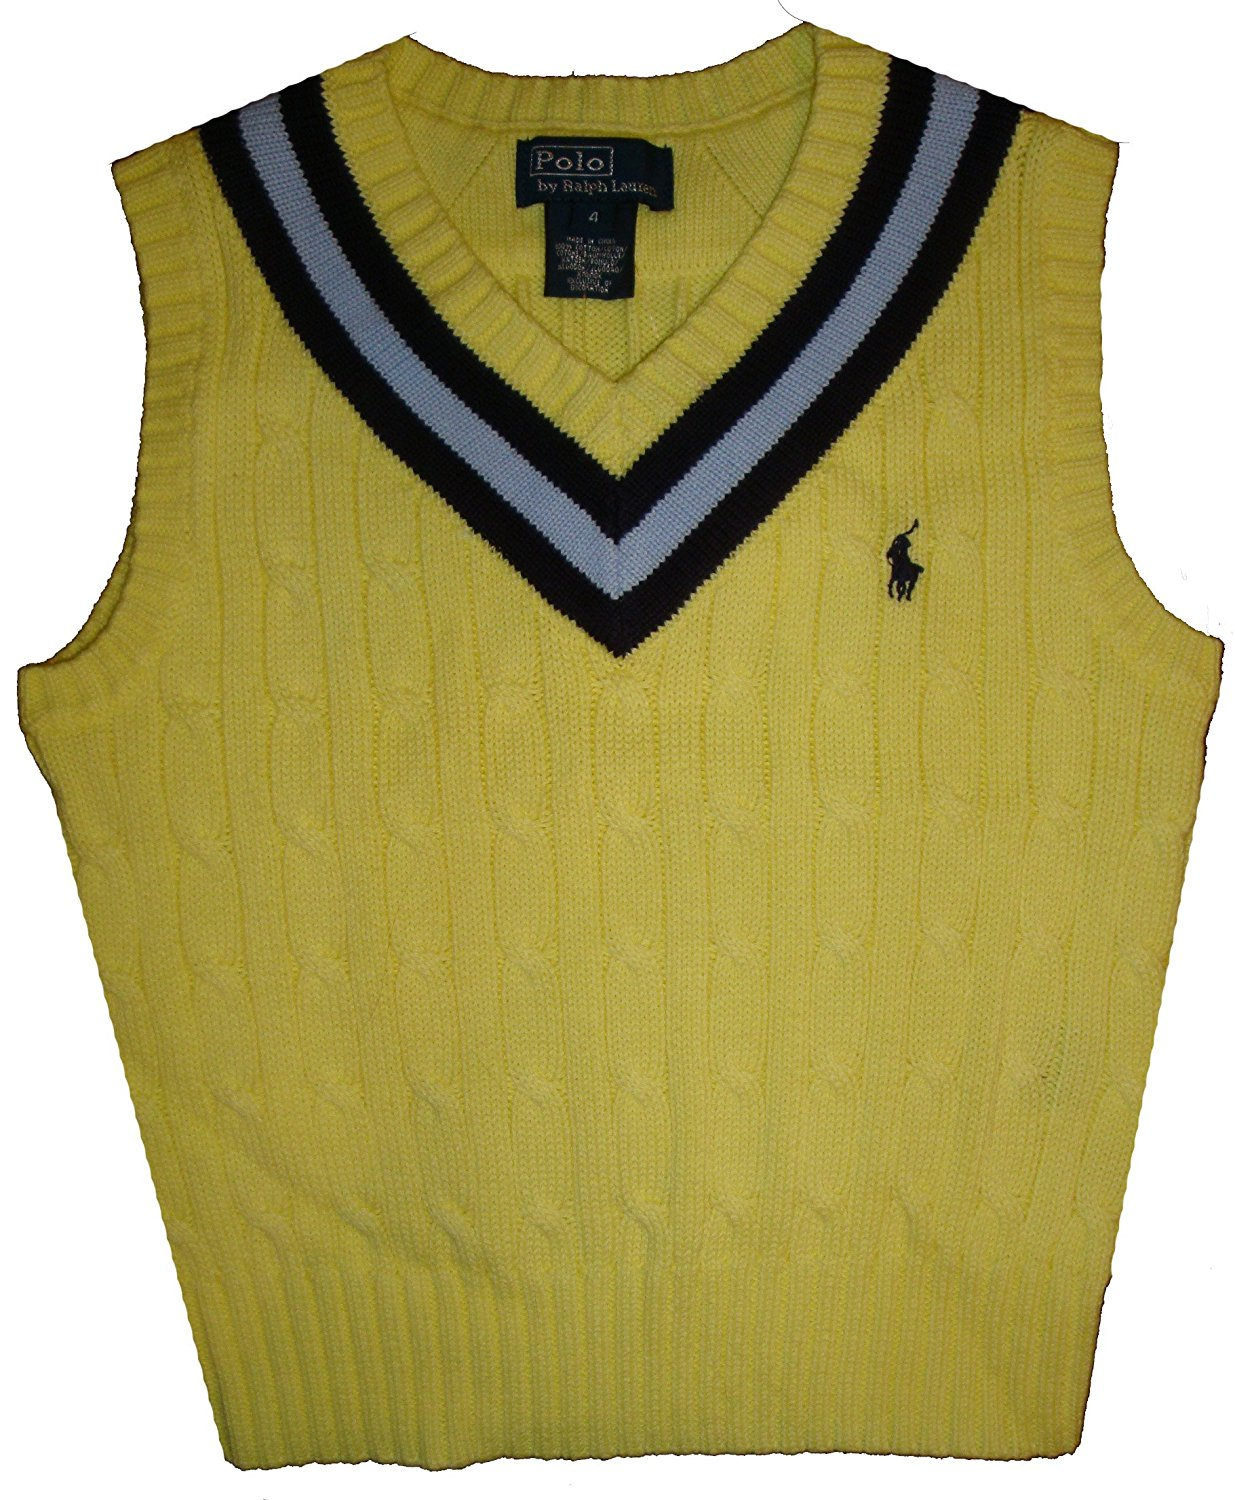 c98041212 Get Quotations · Polo by Ralph Lauren Infant Boys Sweater Vest Available in  Several Color and Sizes